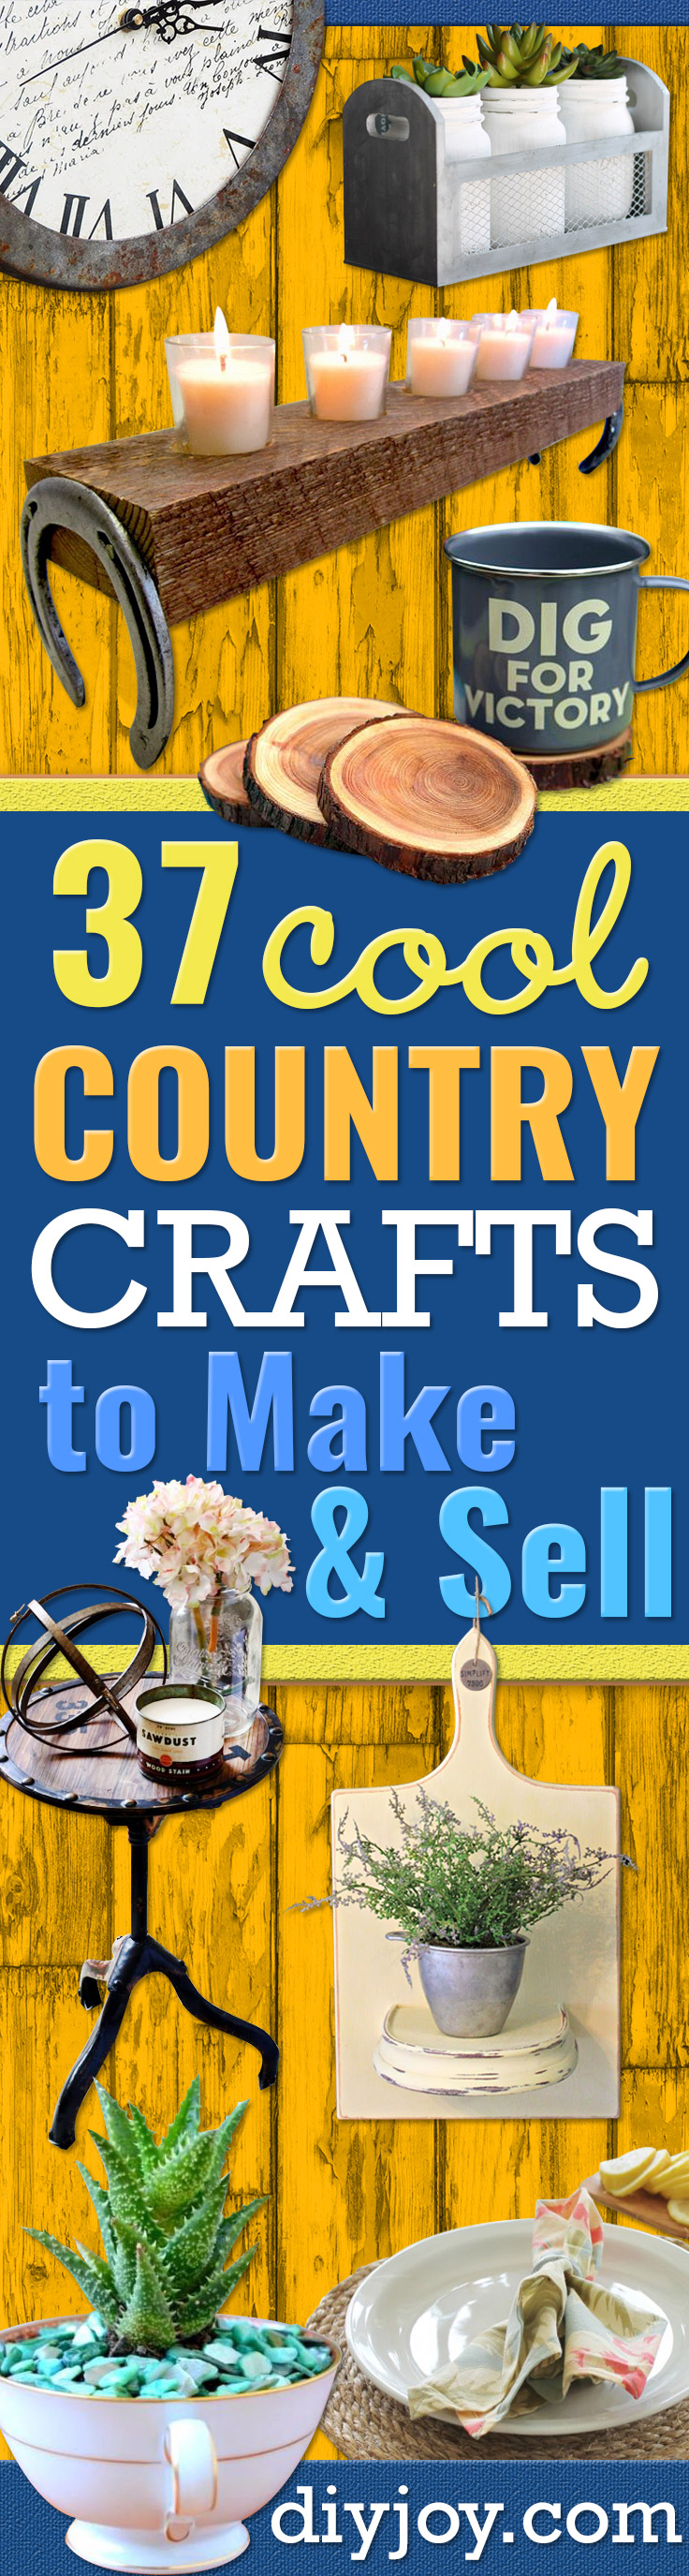 Country Crafts to Make And Sell - Easy DIY Home Decor and Rustic Craft Ideas - Step by Step Farmhouse Decor To Make and Sell on Etsy and at Craft Fairs - Tutorials and Instructions for Creative Ways to Make Money - Best Vintage Farmhouse DIY For Living Room, Bedroom, Walls and Gifts http://diyjoy.com/country-crafts-to-make-and-sell